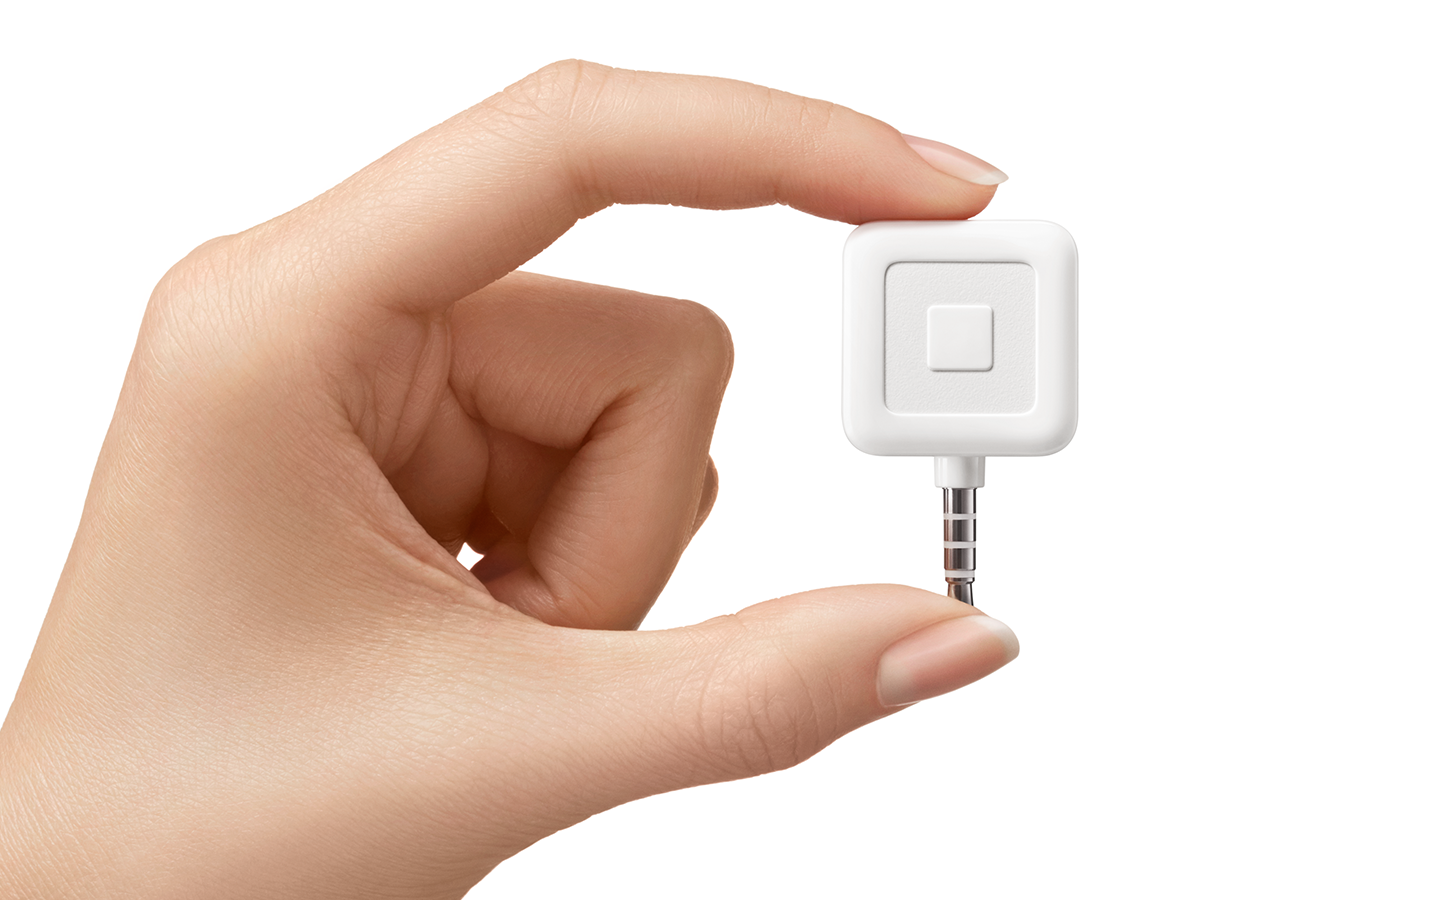 Close-up of the Square Reader